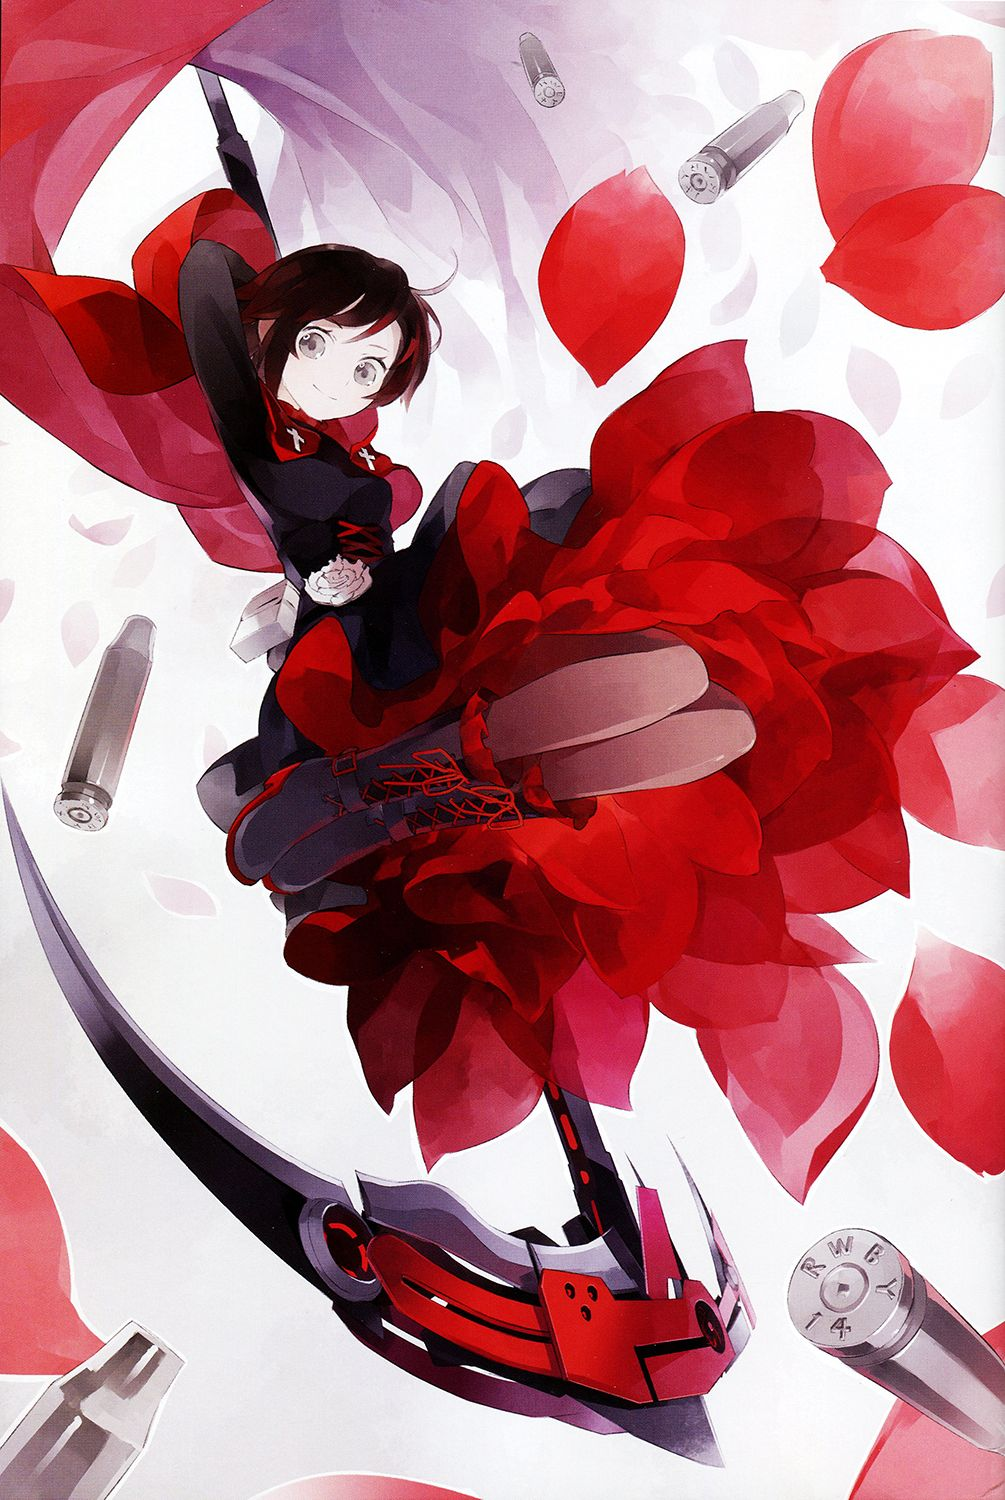 Rwby official japanese fanbook ilustrated by shihou - Rwby ruby rose fanart ...